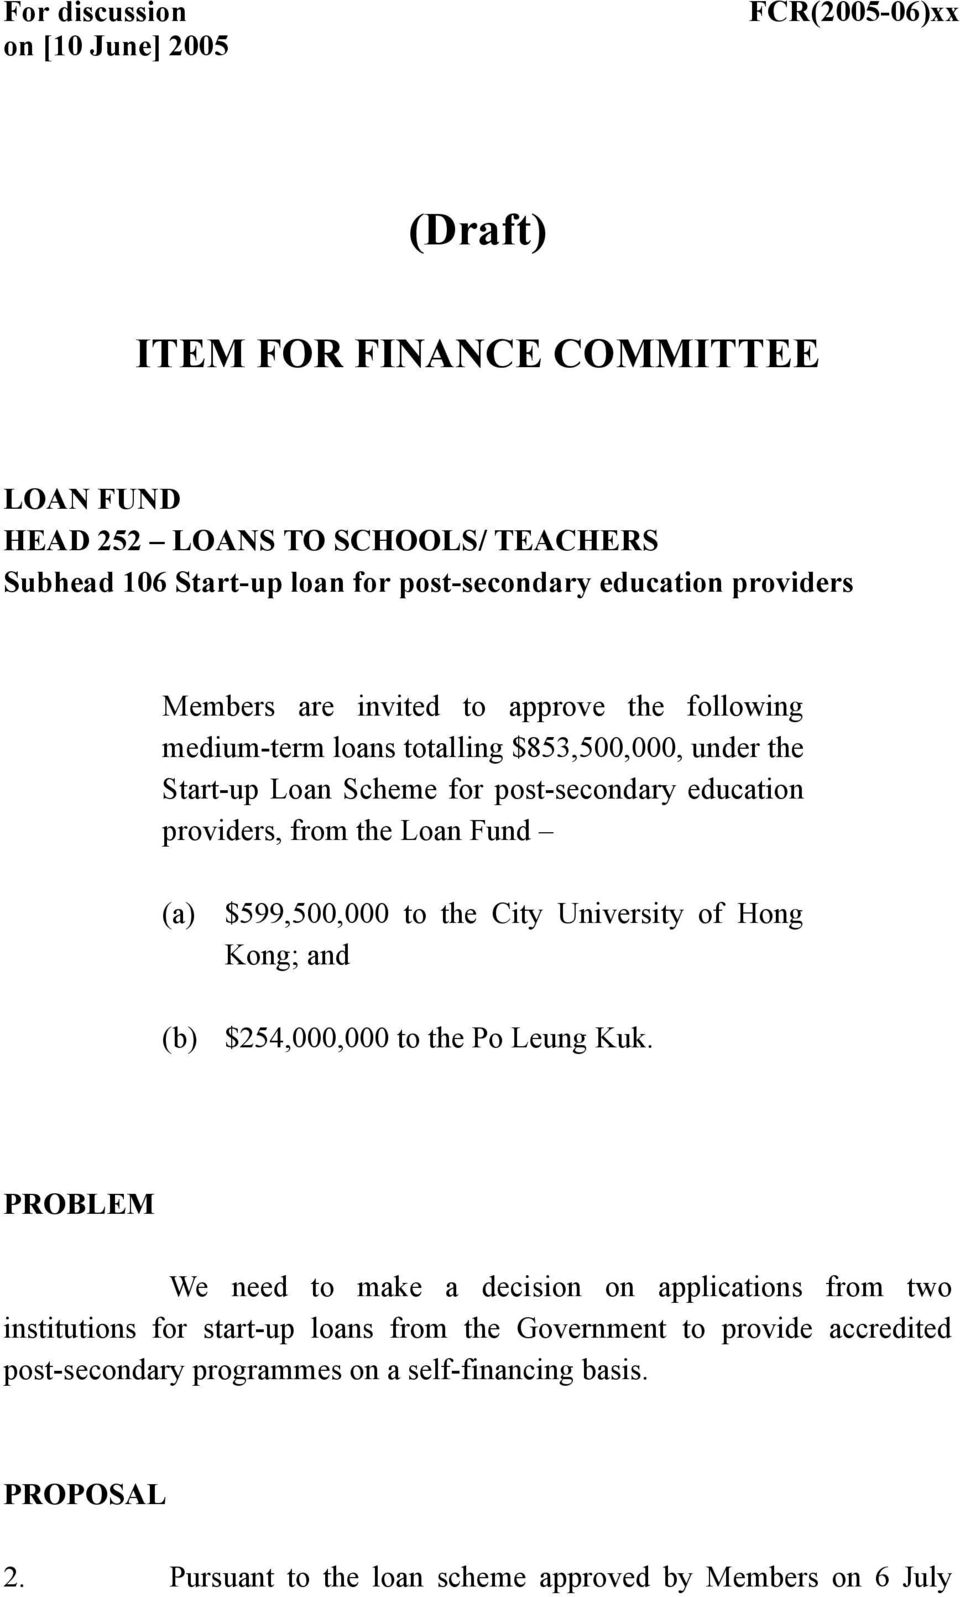 from the Loan Fund (a) $599,500,000 to the City University of Hong Kong; and (b) $254,000,000 to the Po Leung Kuk.